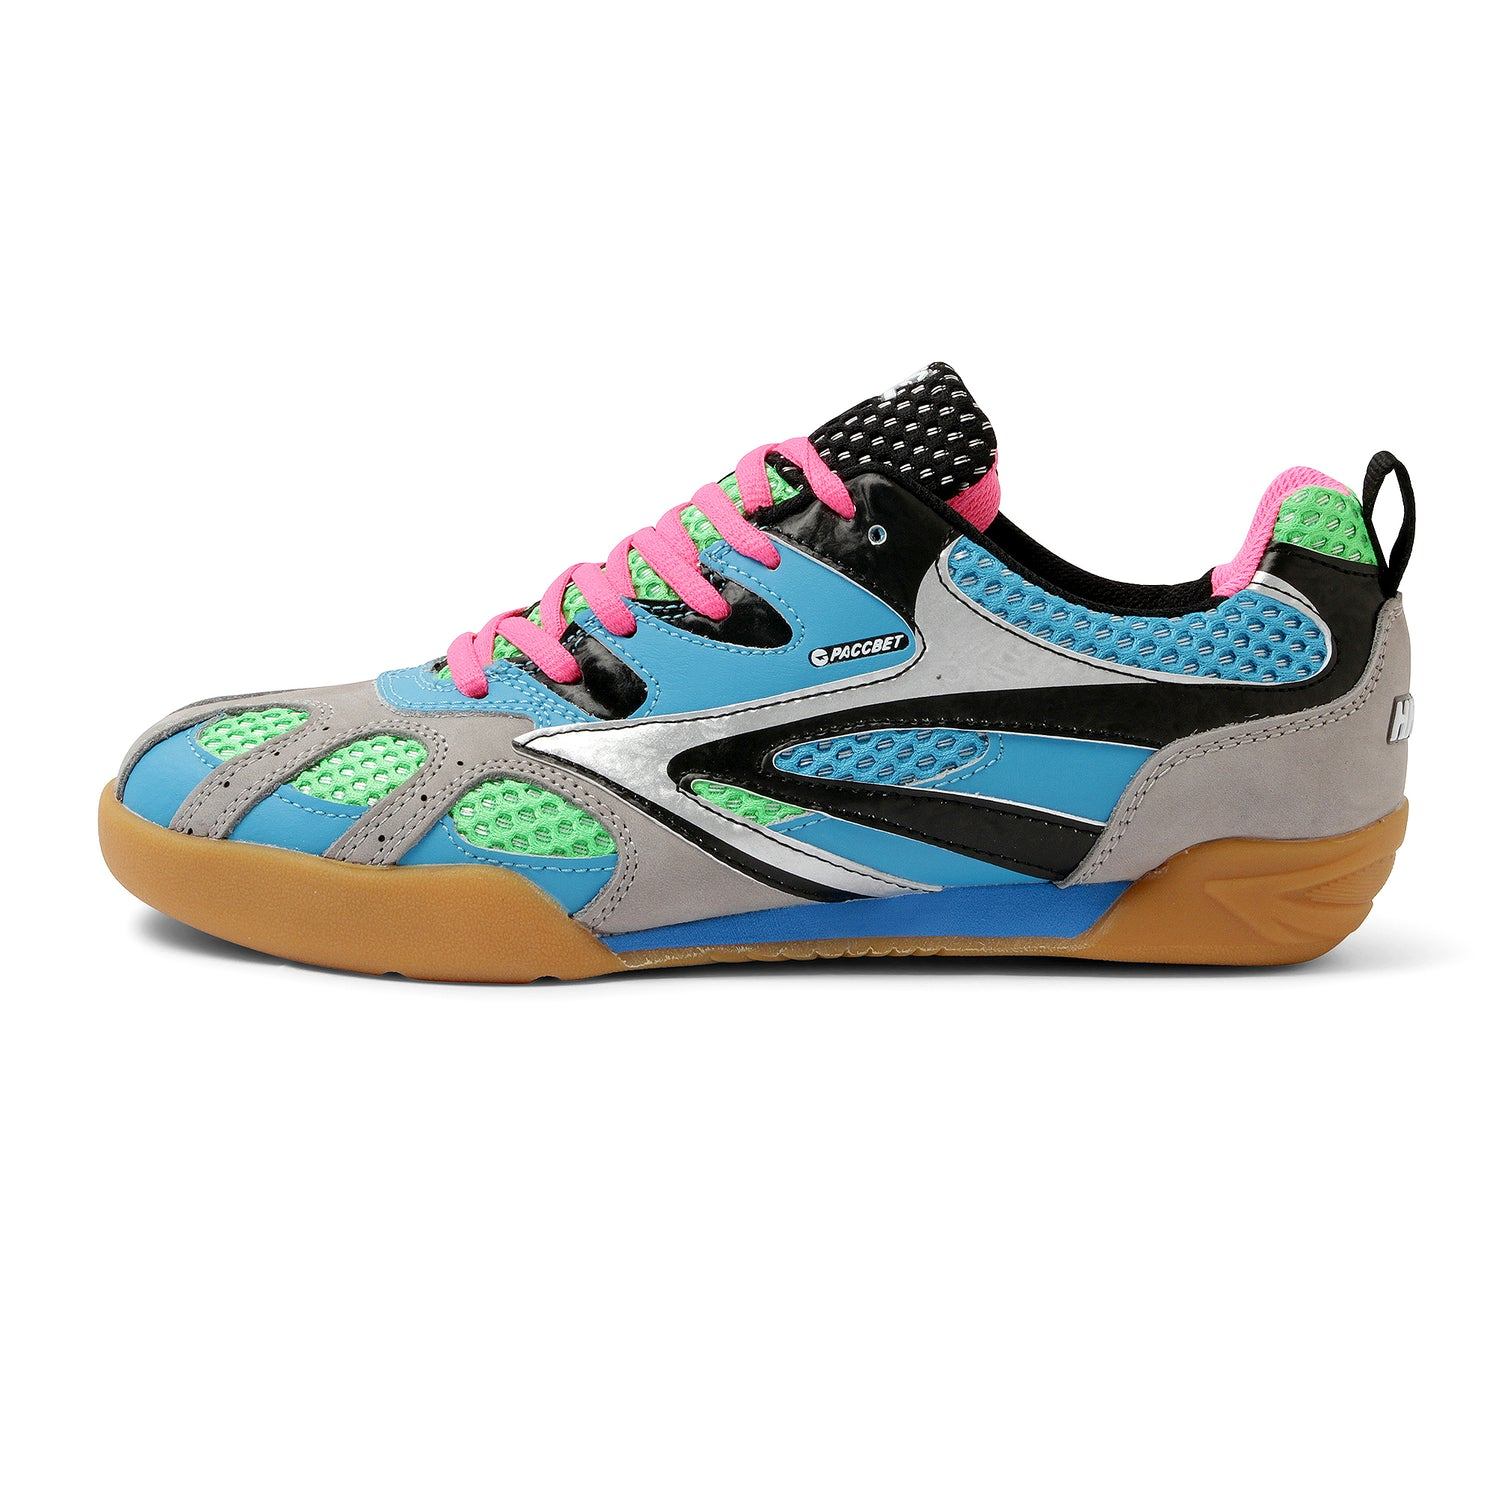 Hybrid Squash Shoe, Blue / Green / Pink